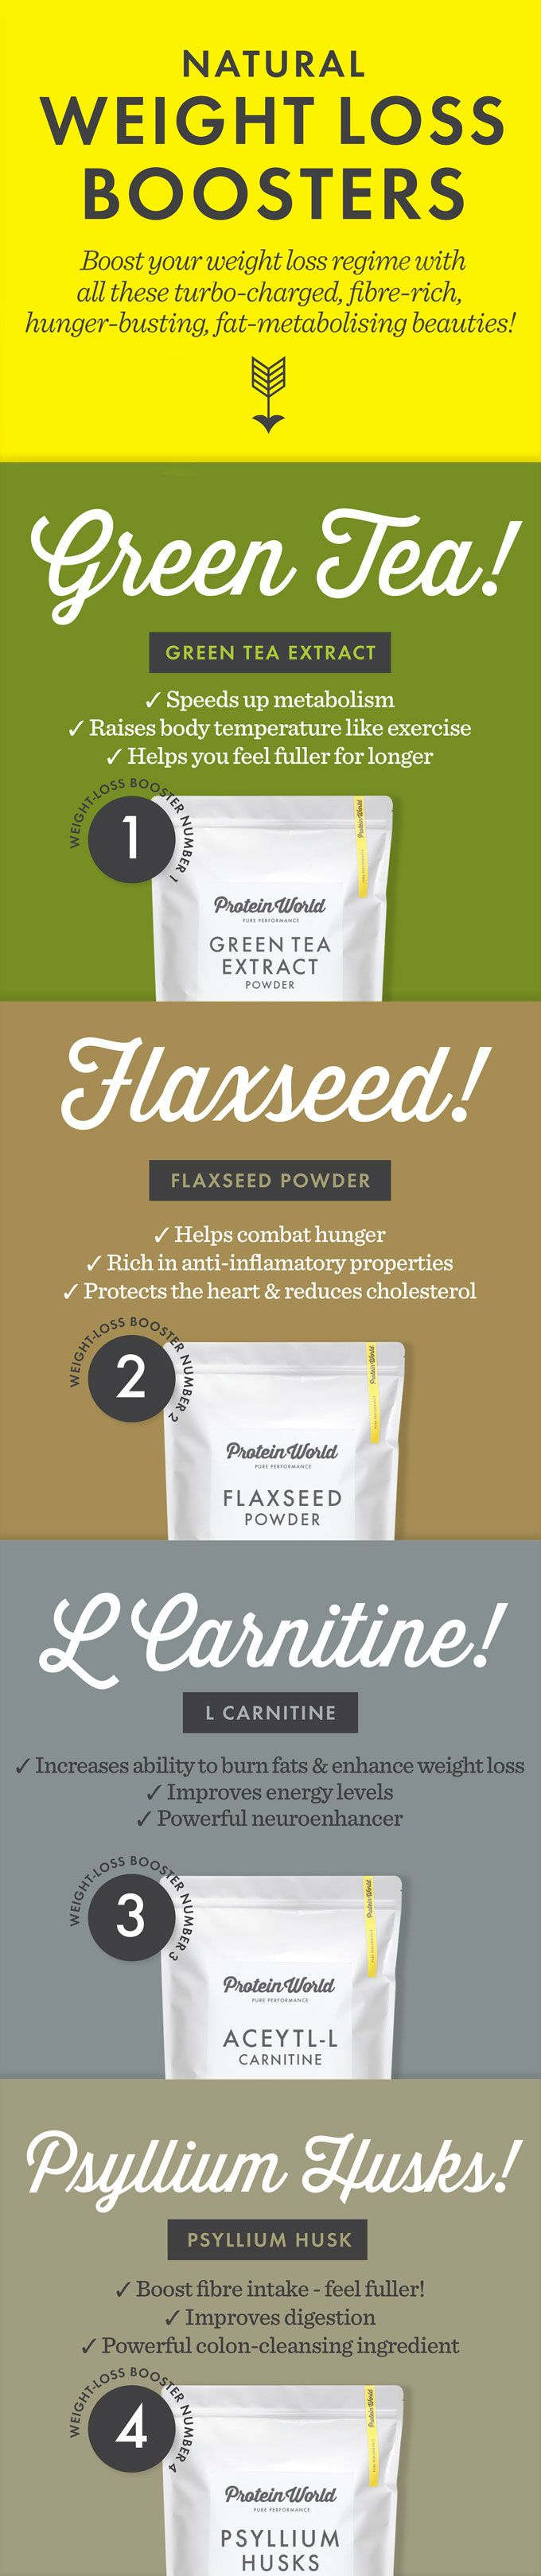 Powerful Natural Weight Loss Boosters proteinworld.com